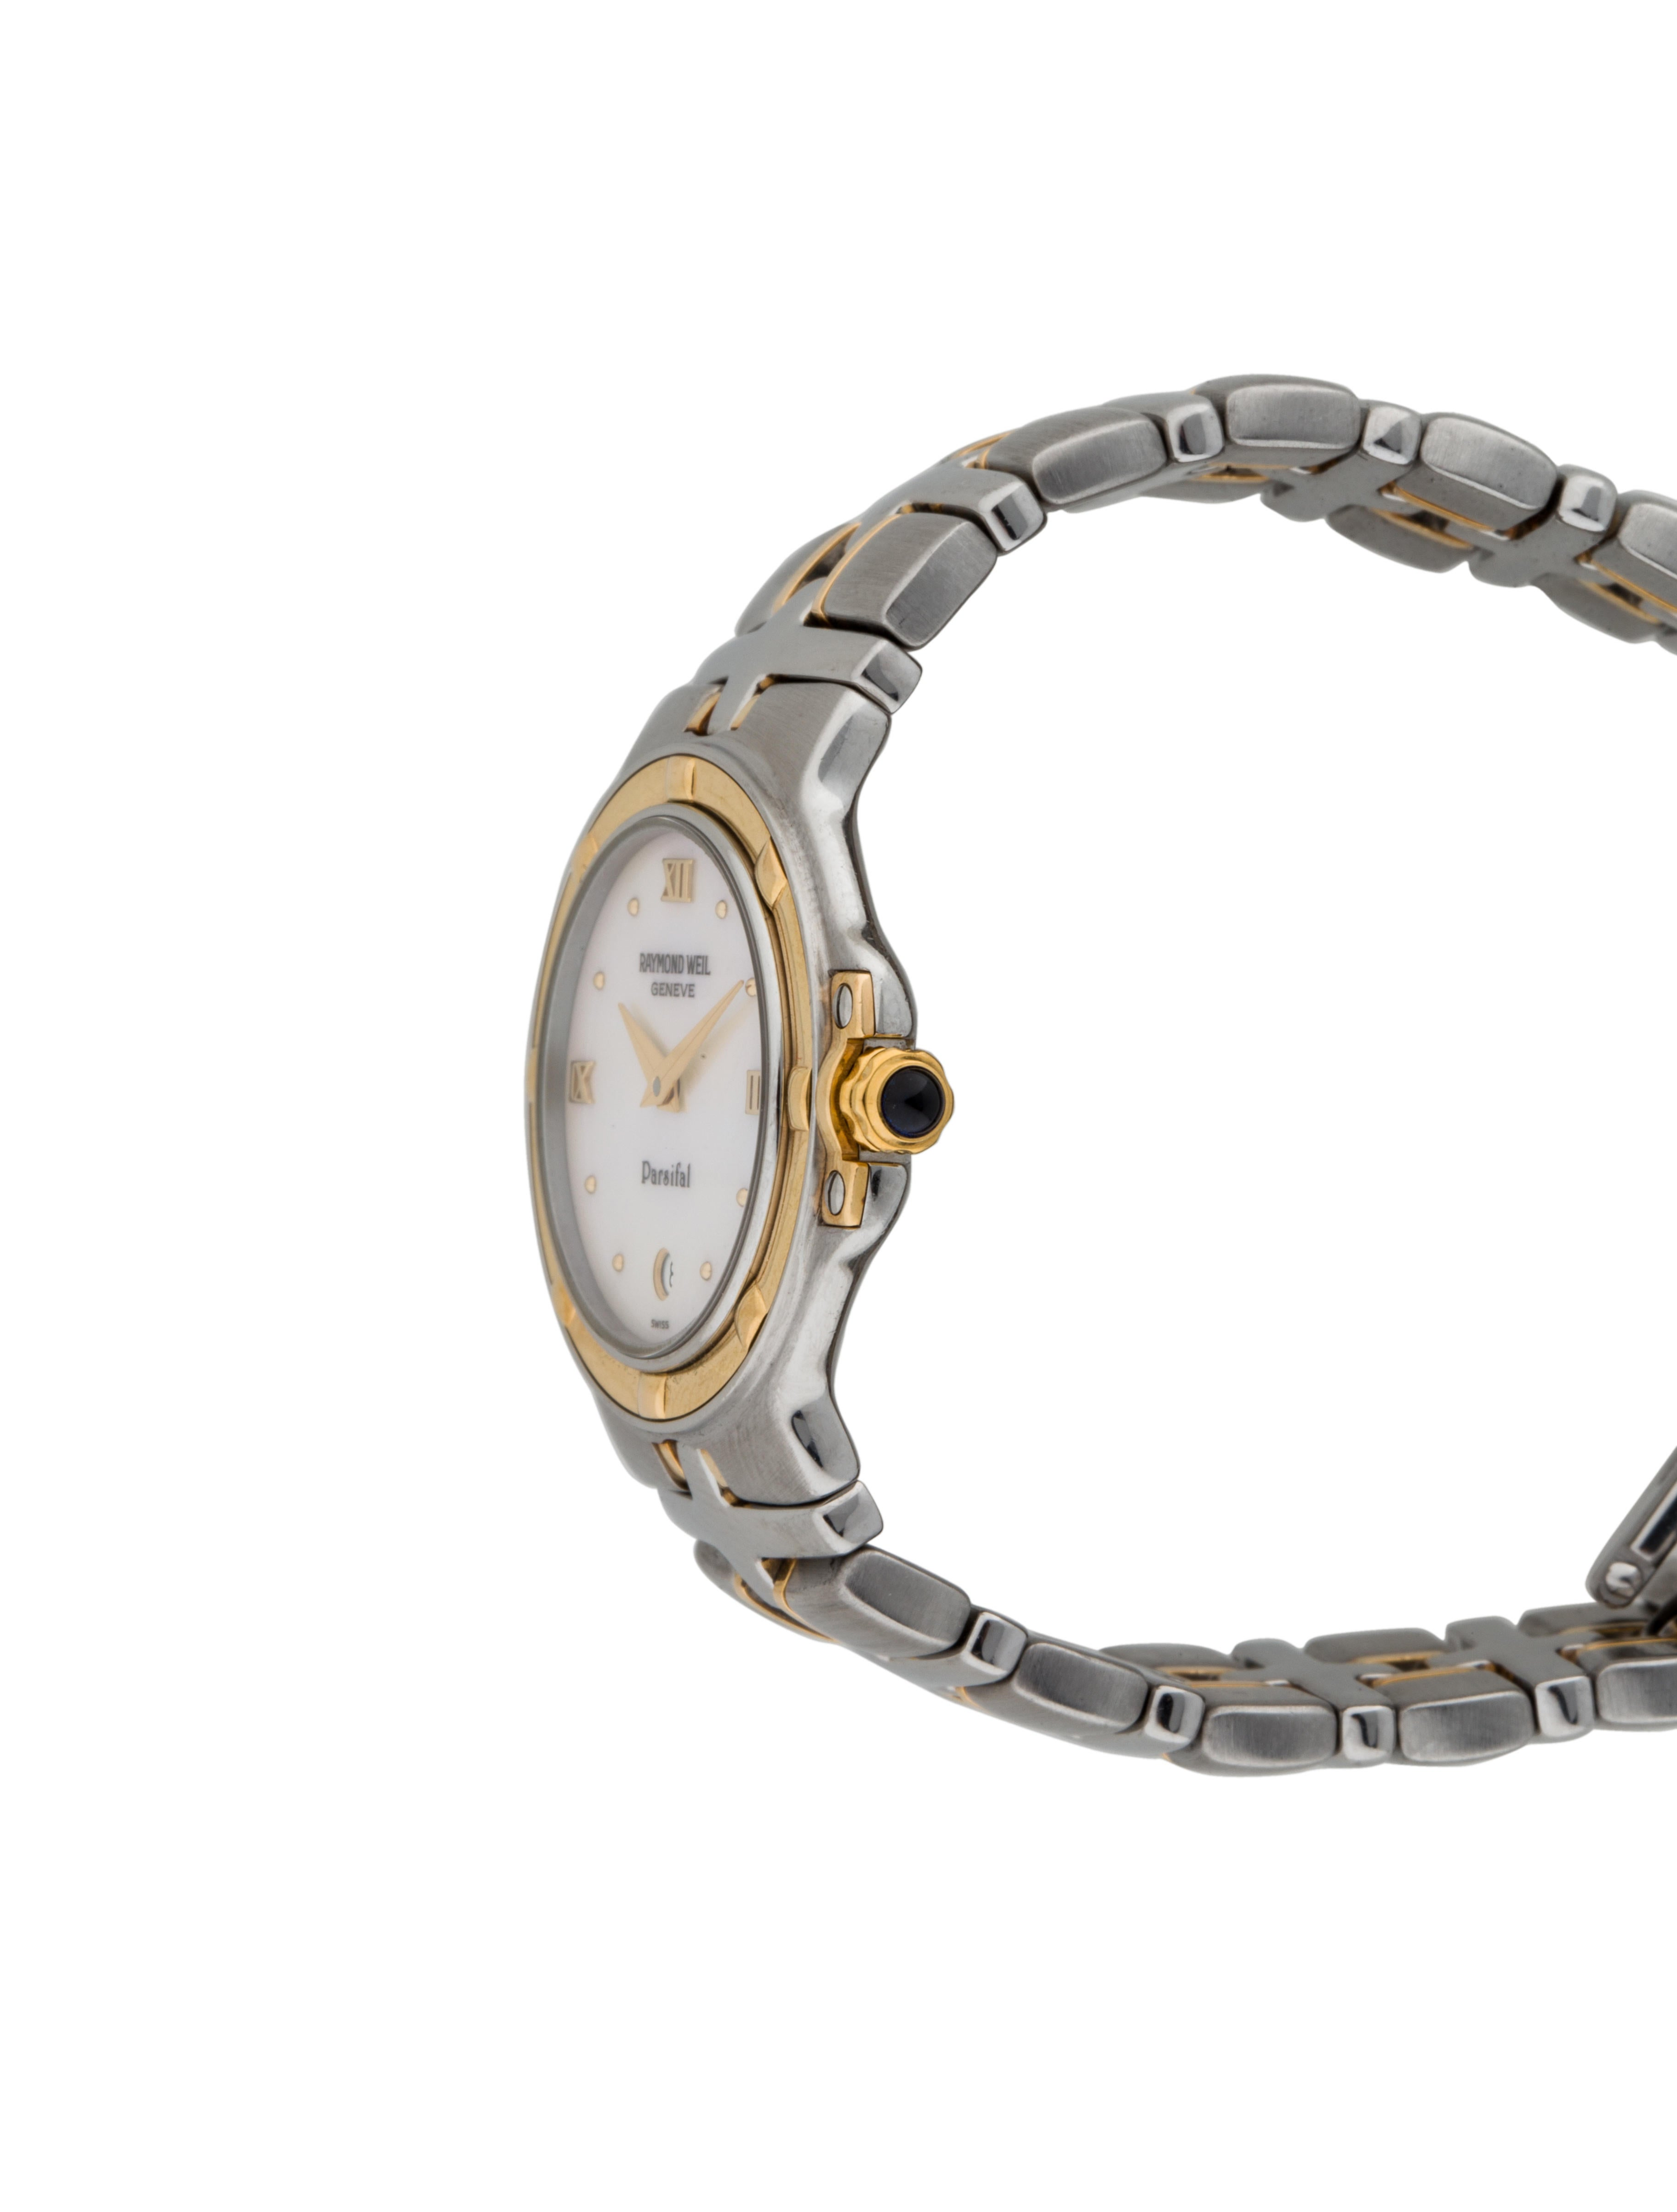 Parsifal Gents Collection - Men's Luxury Watches | RAYMOND ...